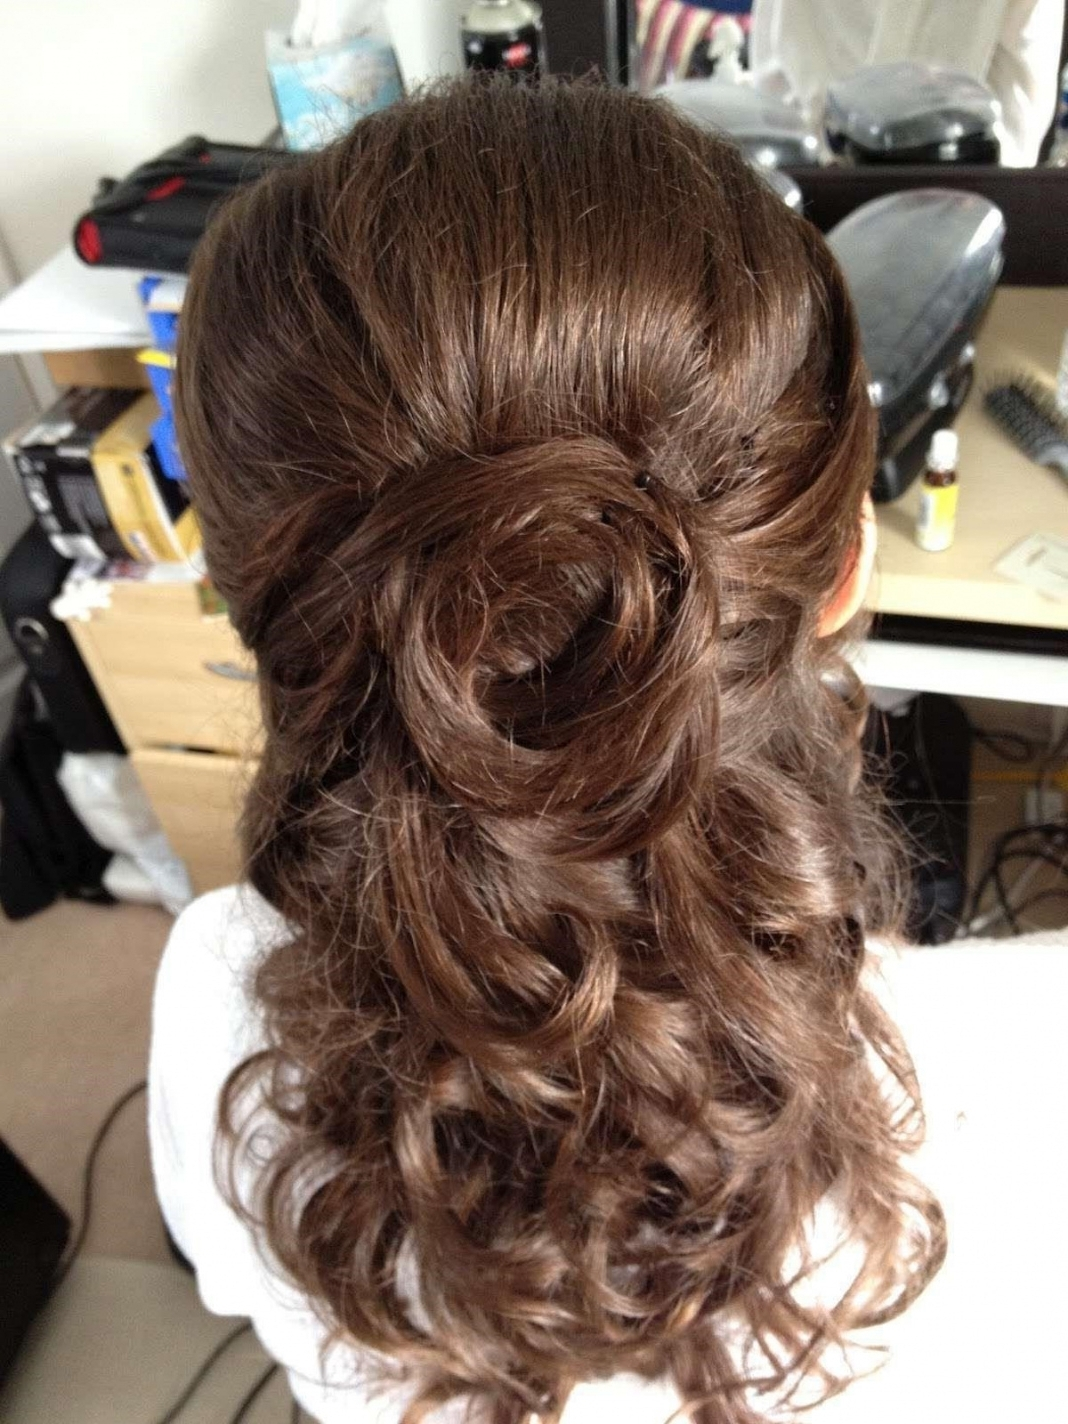 Wedding Hairstyles For Long Hair Half Up Half Down (View 11 of 15)